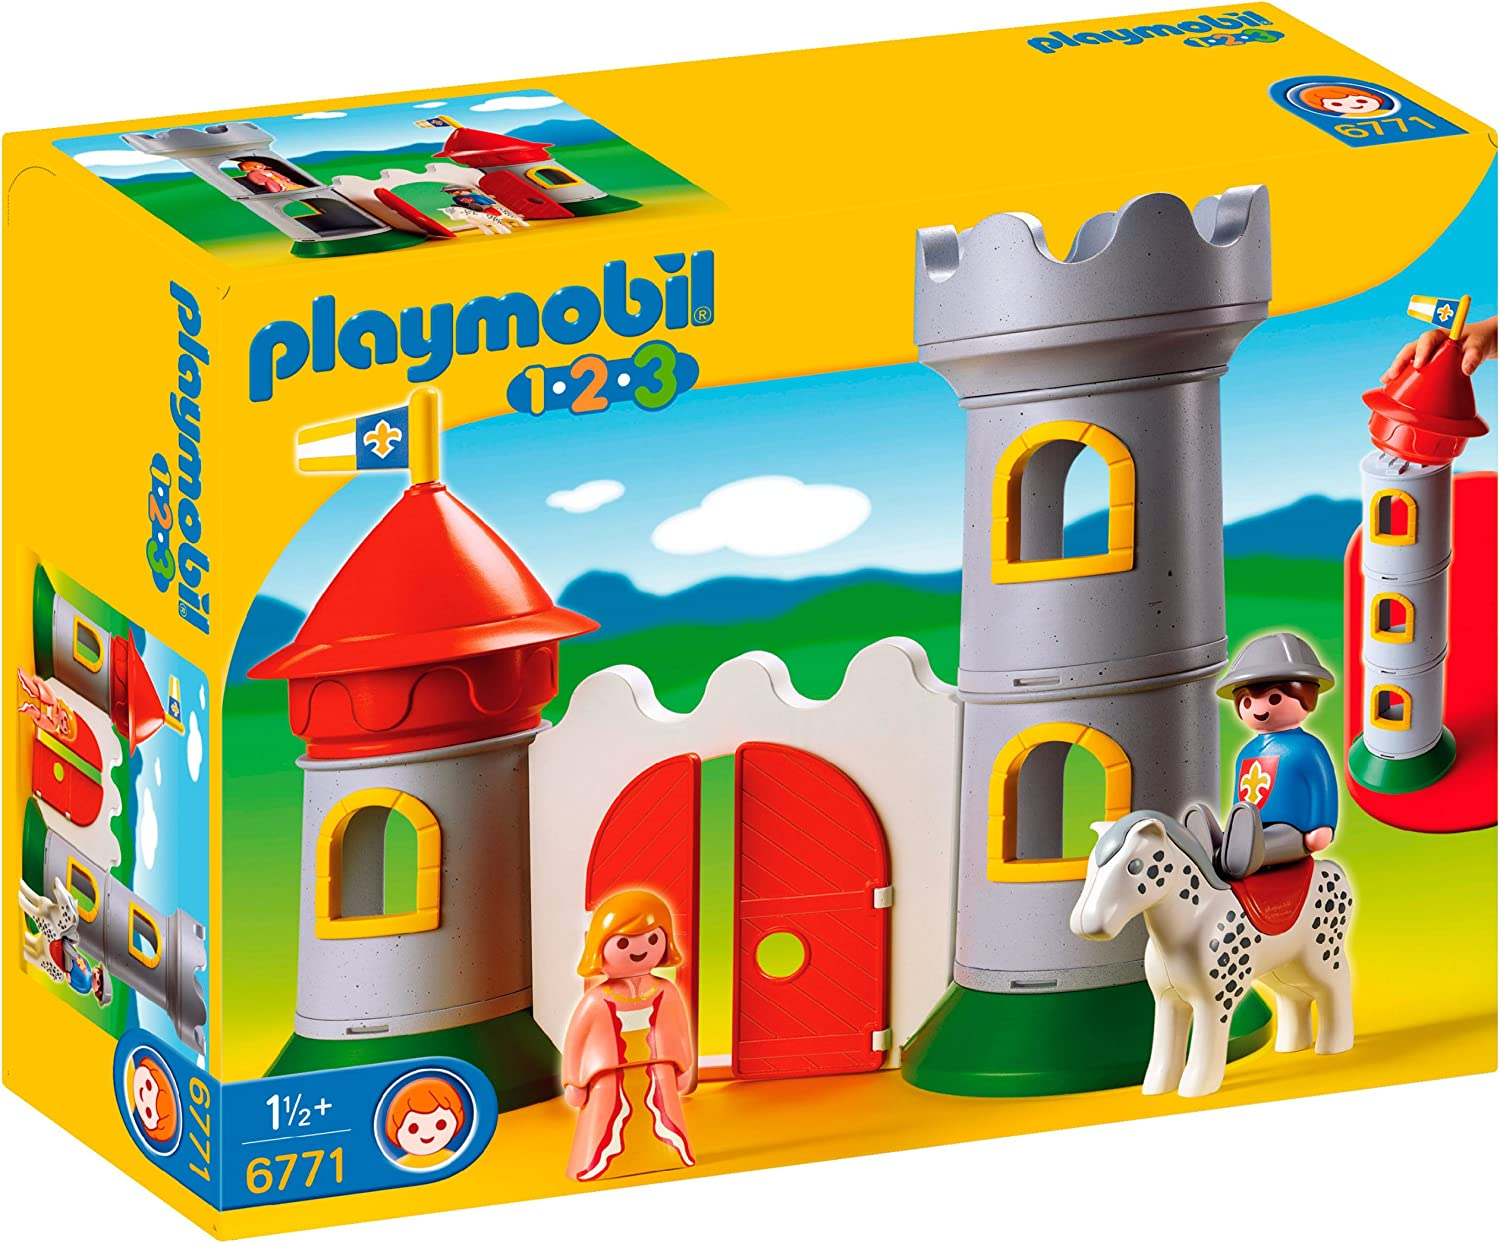 Playmobil My First 1.2.3 Knight's Castle